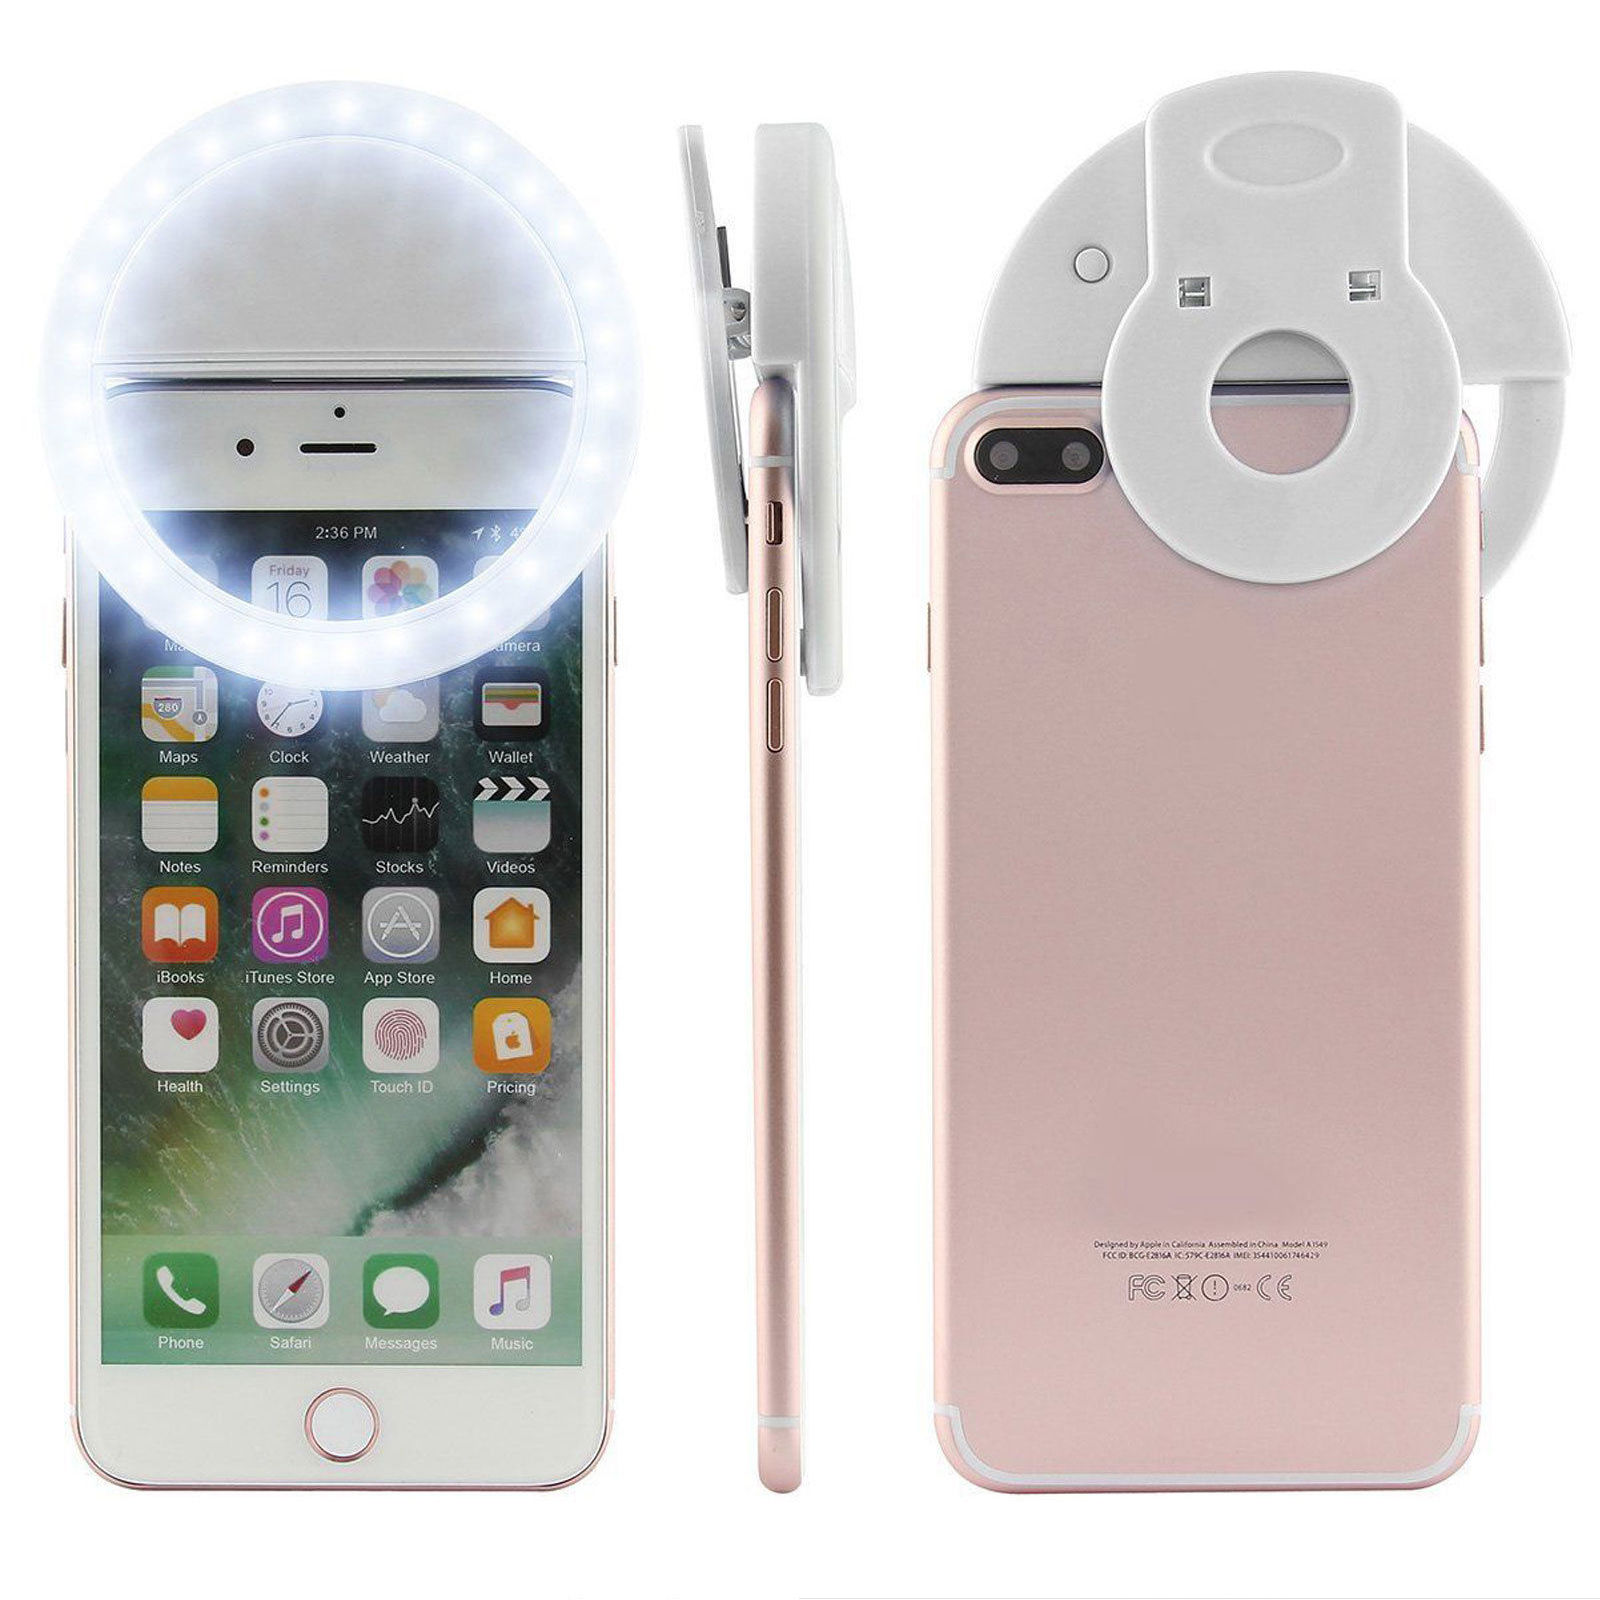 Amazing Phone Lights Up When It Rings Phone Light Up When Ringing Decoratingspecial  Com . Good Looking